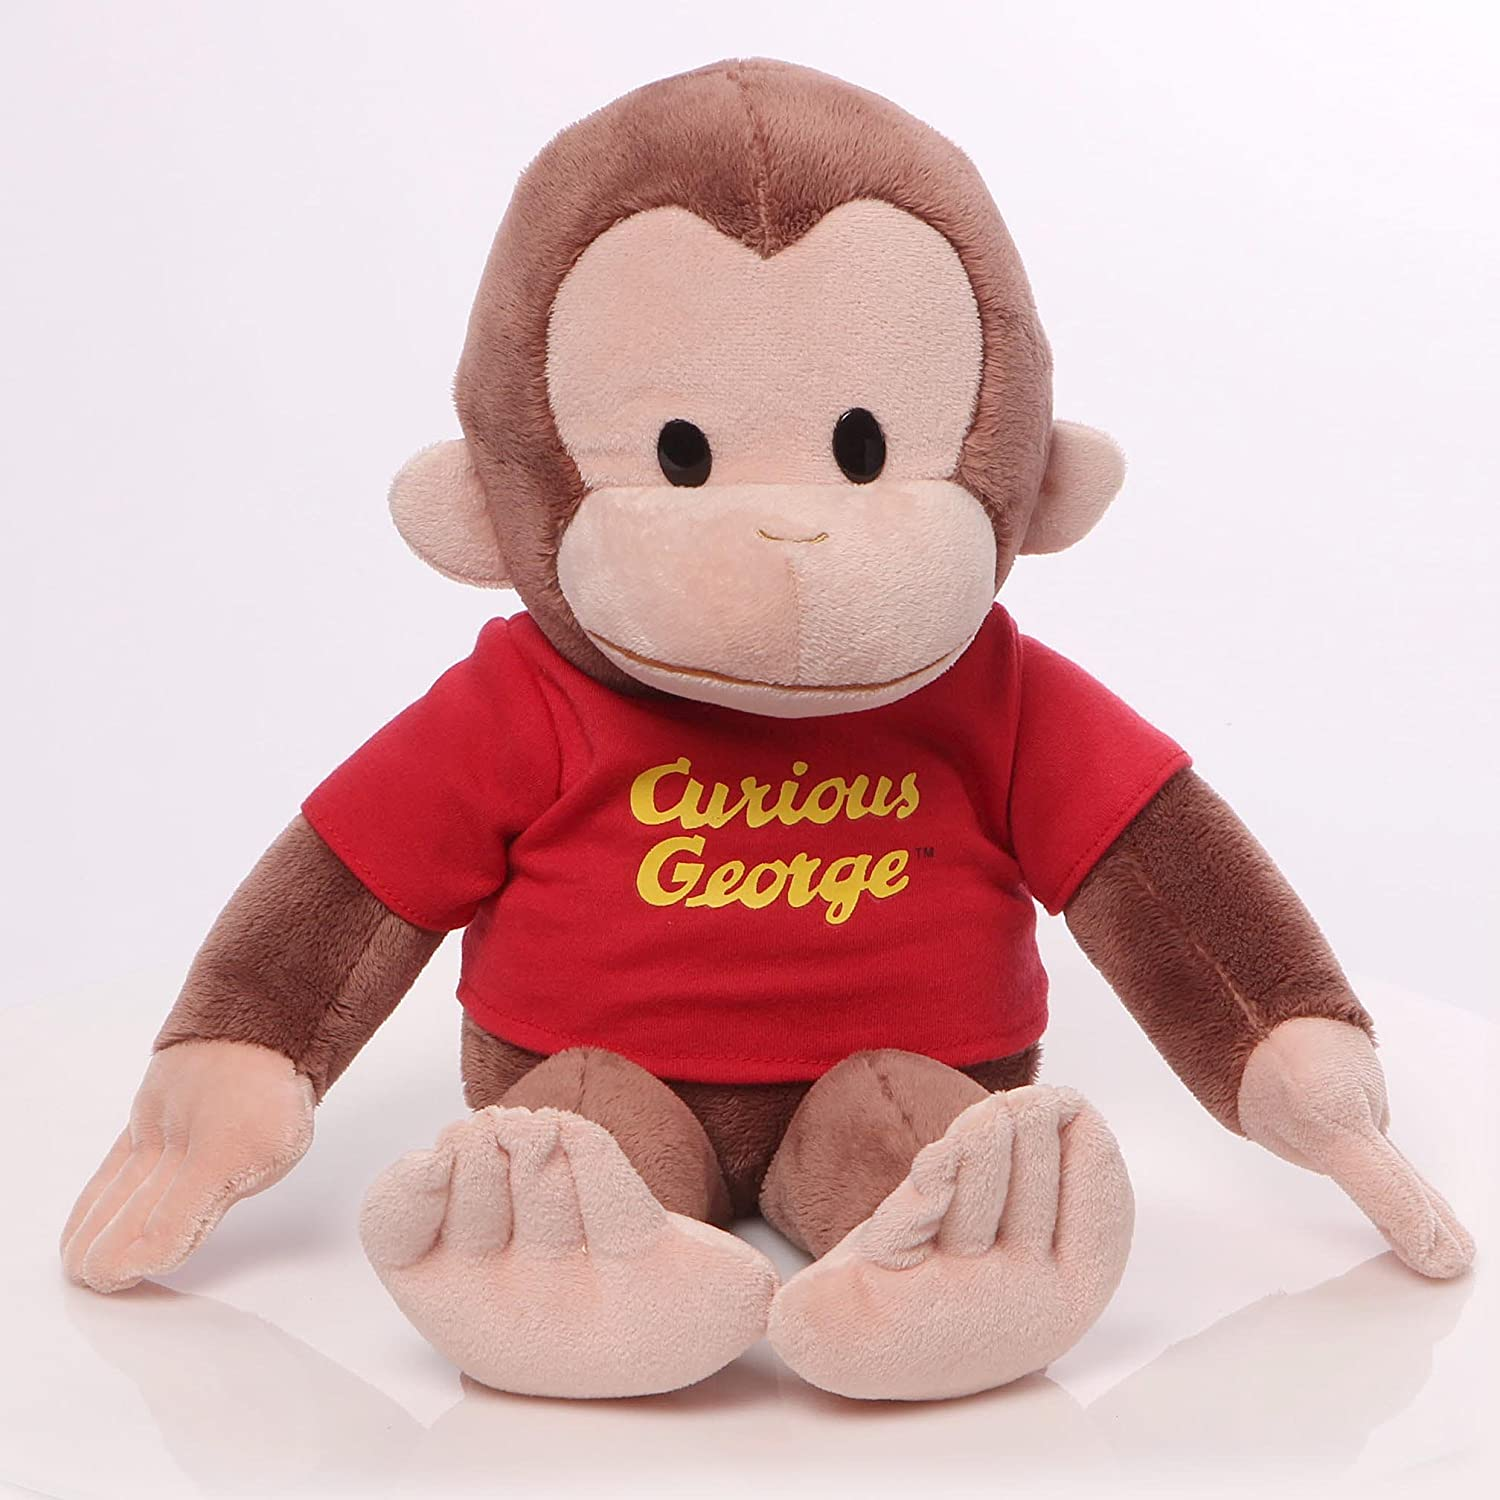 Amazon.com: GUND Curious George T-Shirt Stuffed Animal Plush, 36